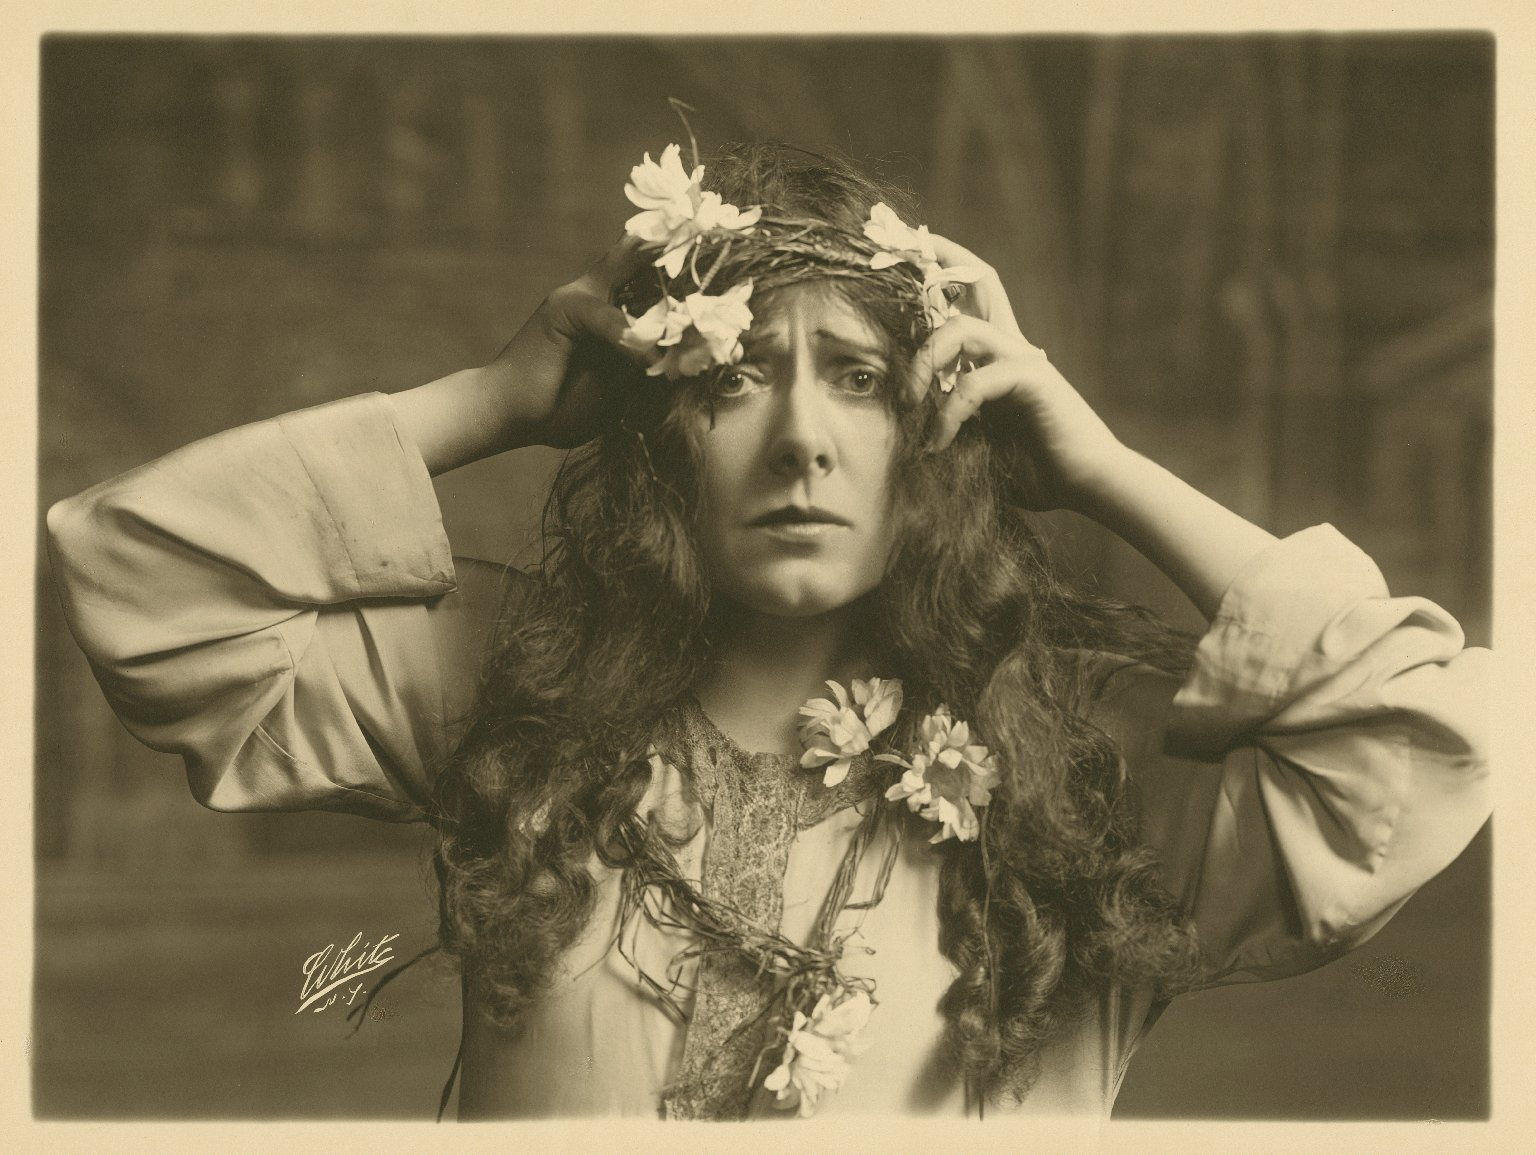 [Julia Marlowe as Ophelia in Shakespeare's Hamlet] [graphic] / White.